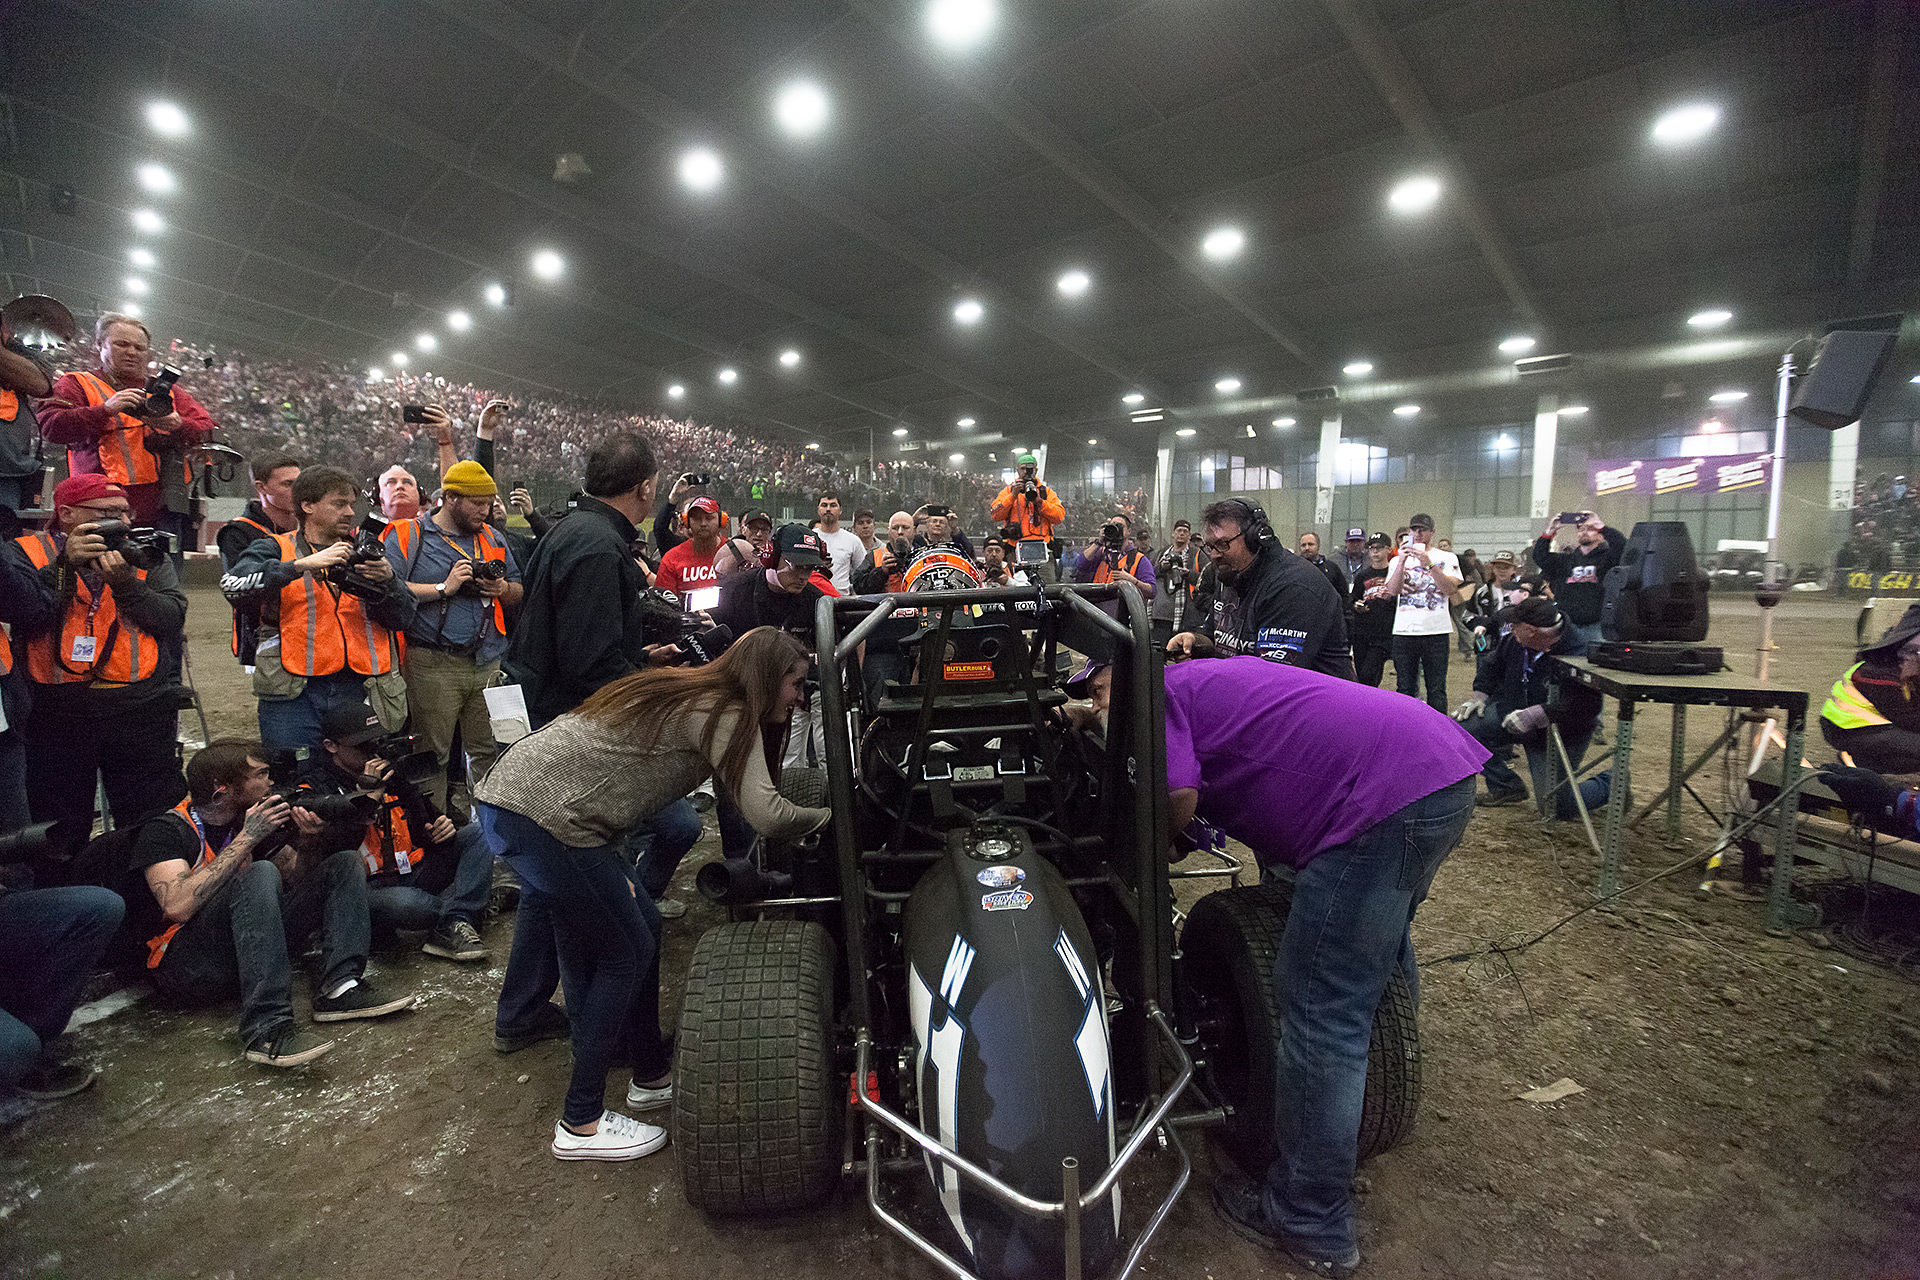 Saturday January 14, TULSA, Oklahoma - Keith Kunz—co-founder of Keith Kunz Motorsports; winner of The 31st annual Lucas Oil Chili Bowl Nationals presented by General Tire ( Jeffrey Turford / TDP )